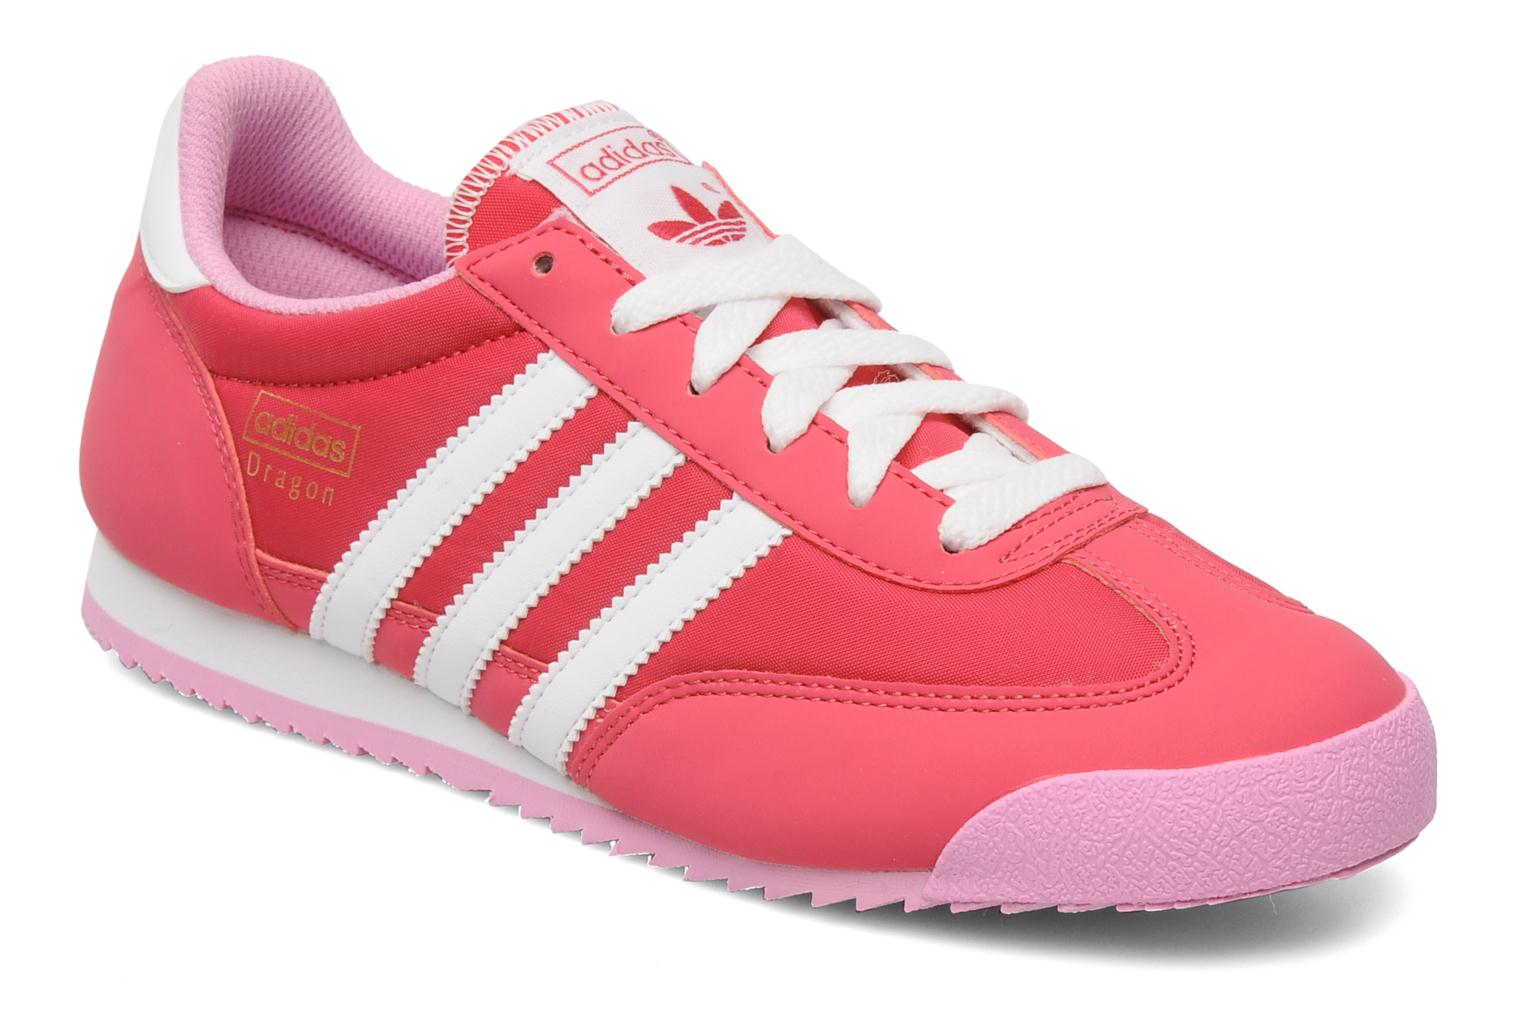 adidas dragon pink trainers